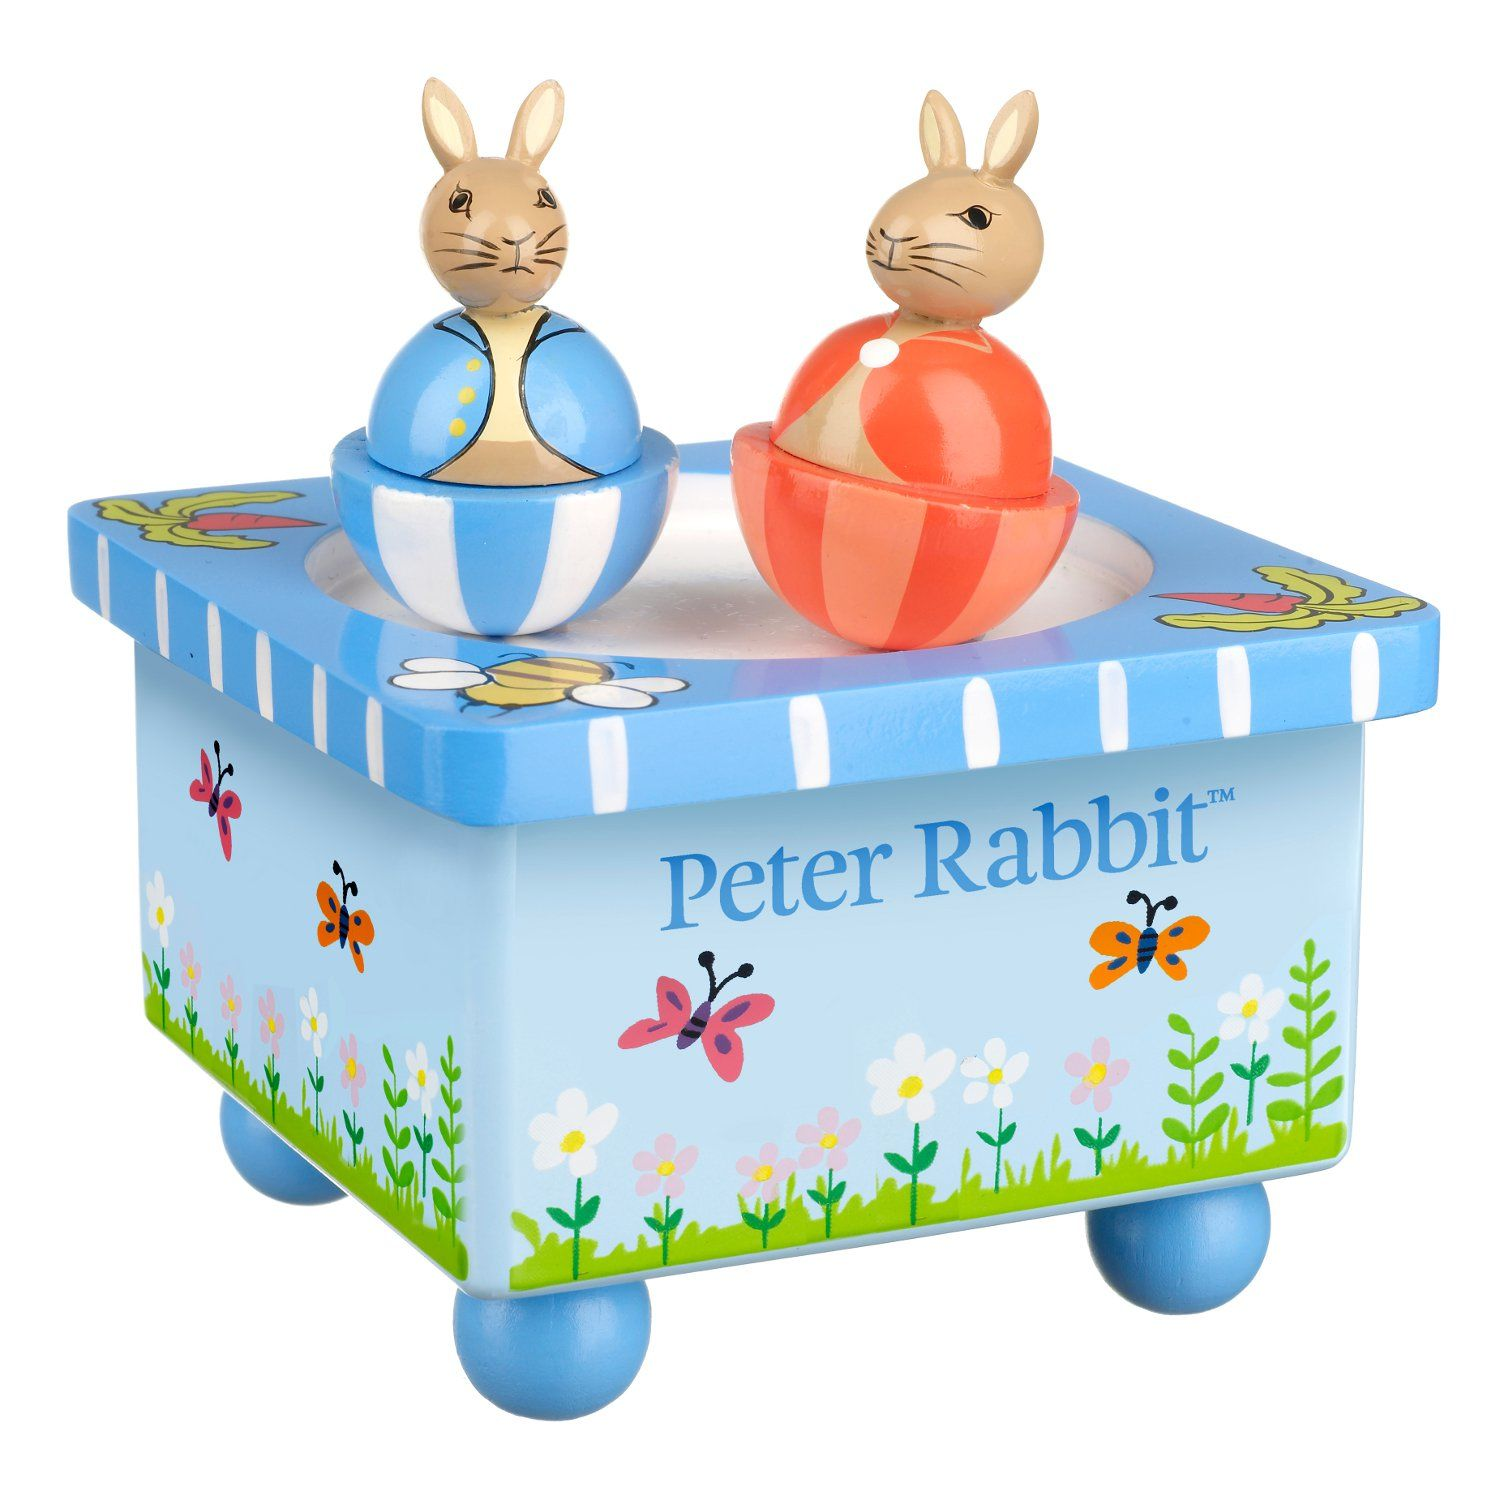 Peter Rabbit Peter Rabbit Wooden Music Box